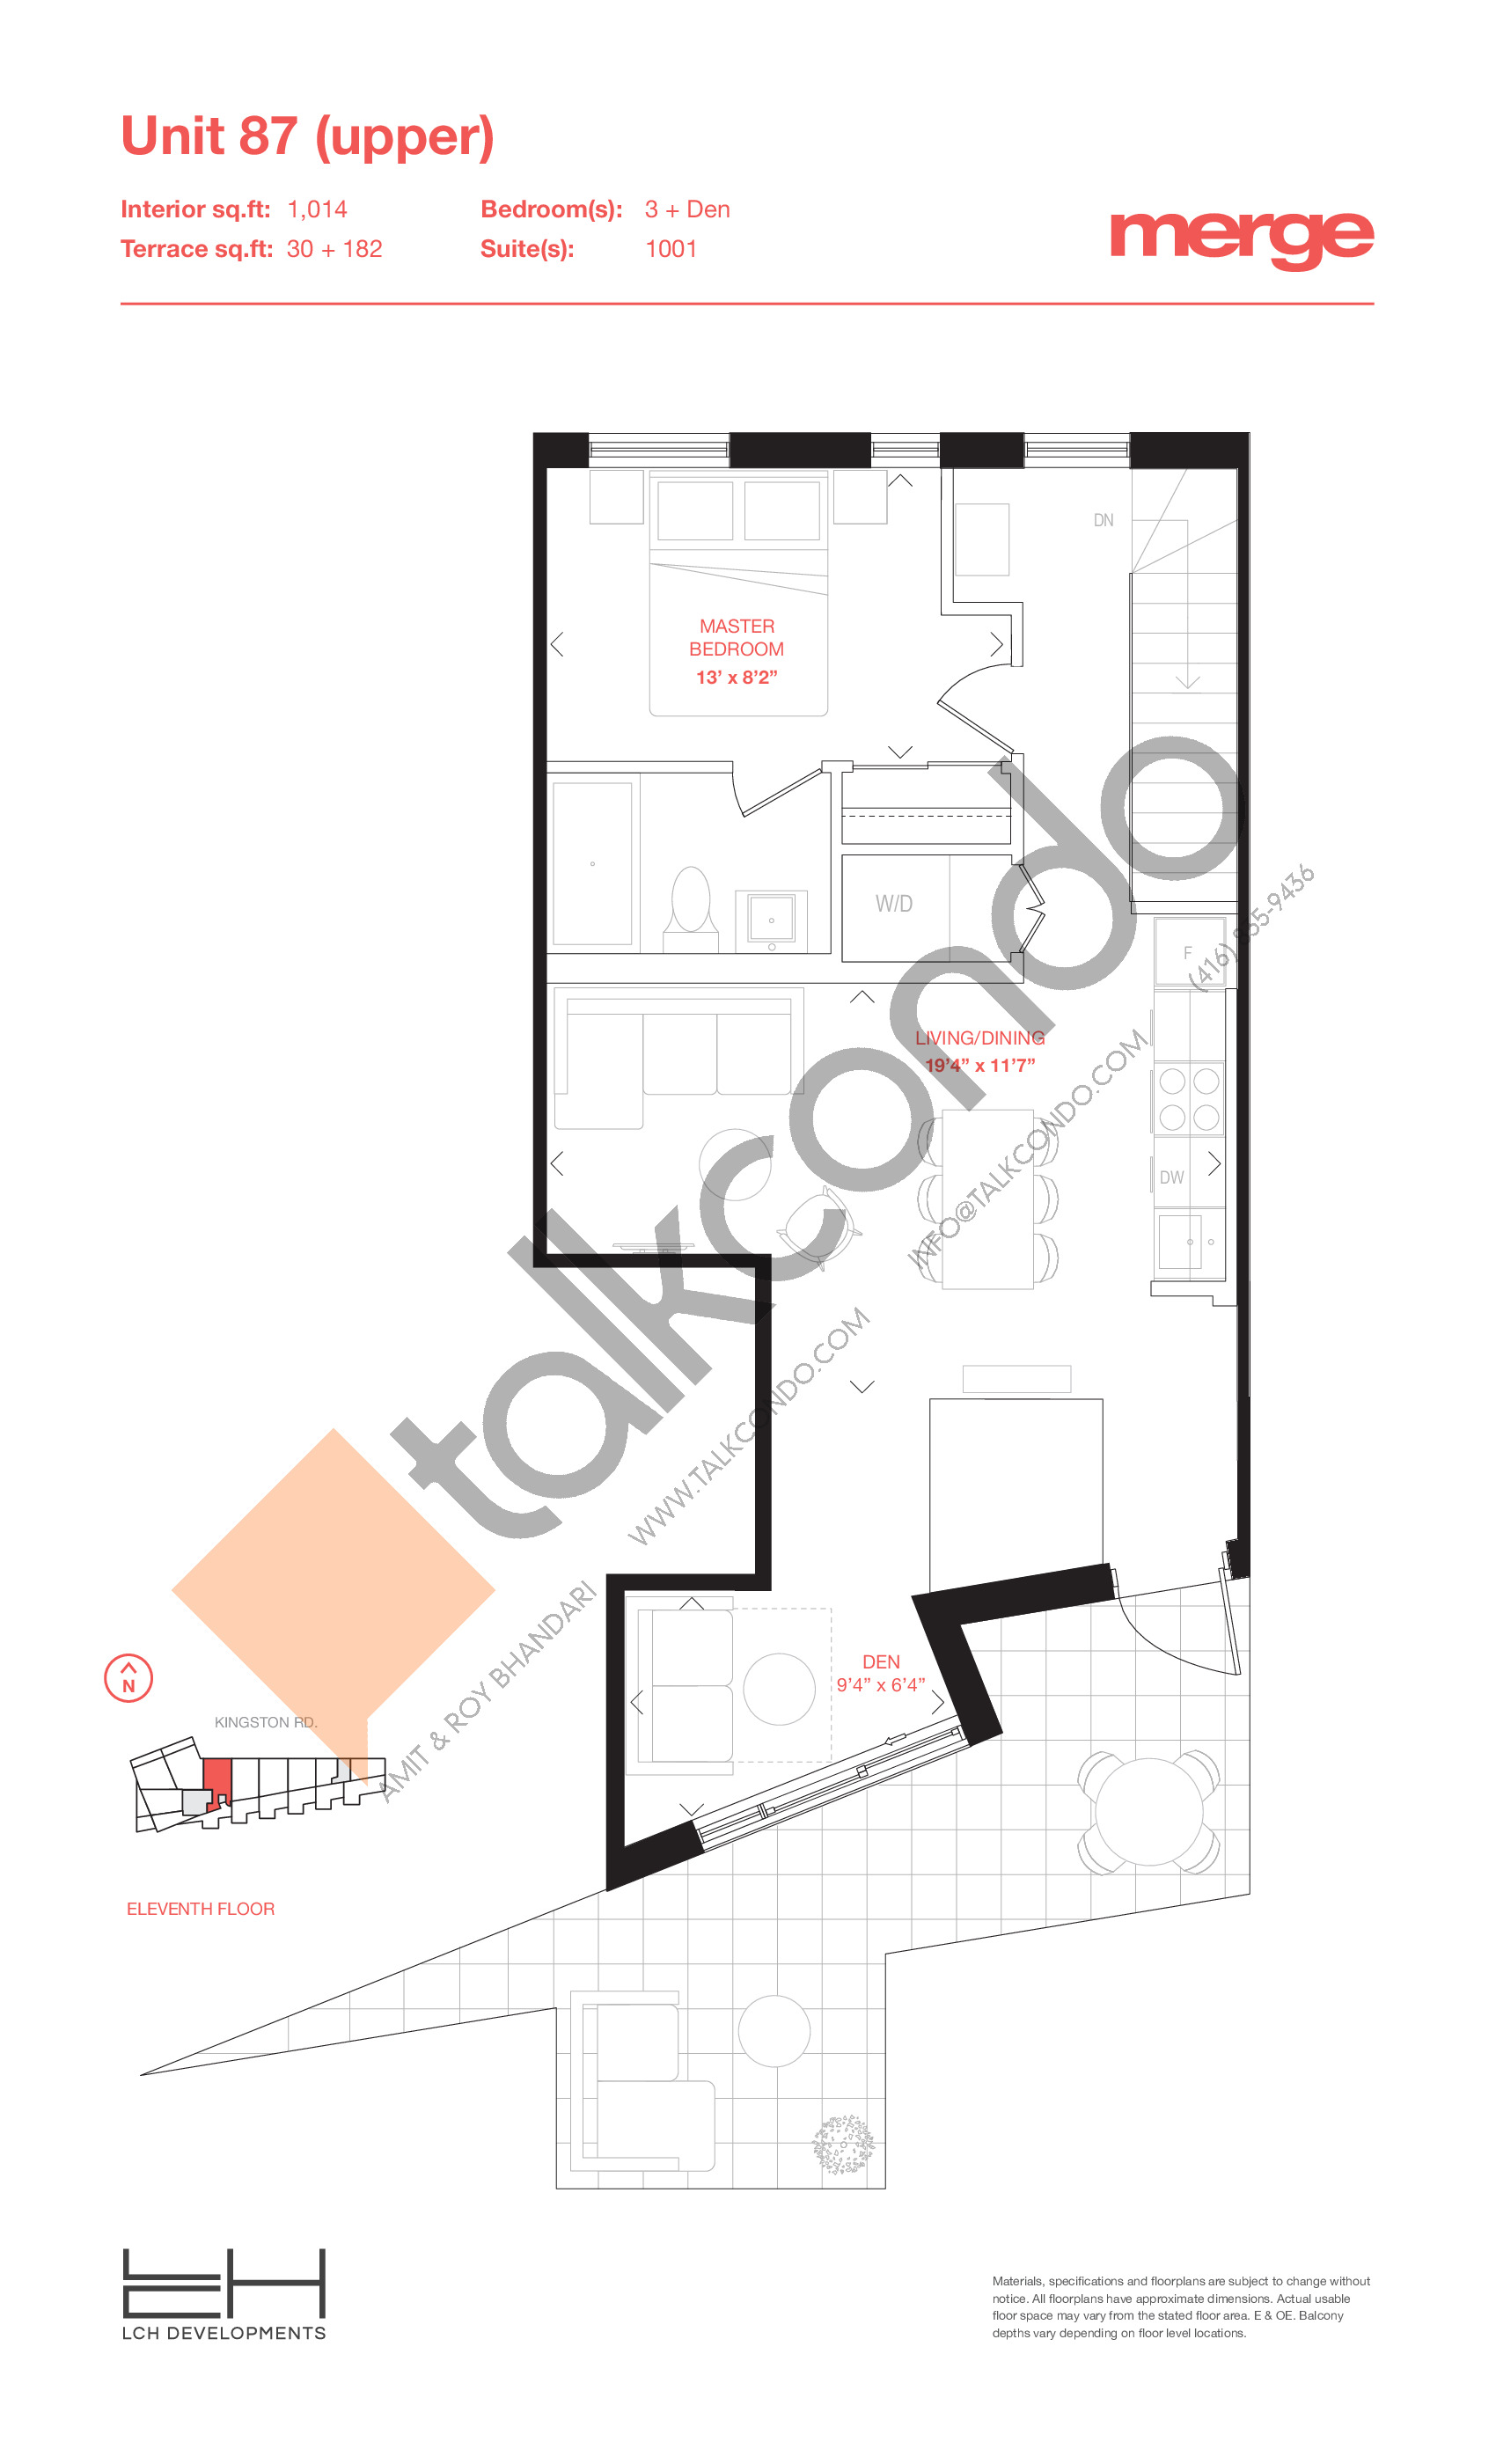 Unit 87 (Upper) - 2 Storey Floor Plan at Merge Condos - 1014 sq.ft